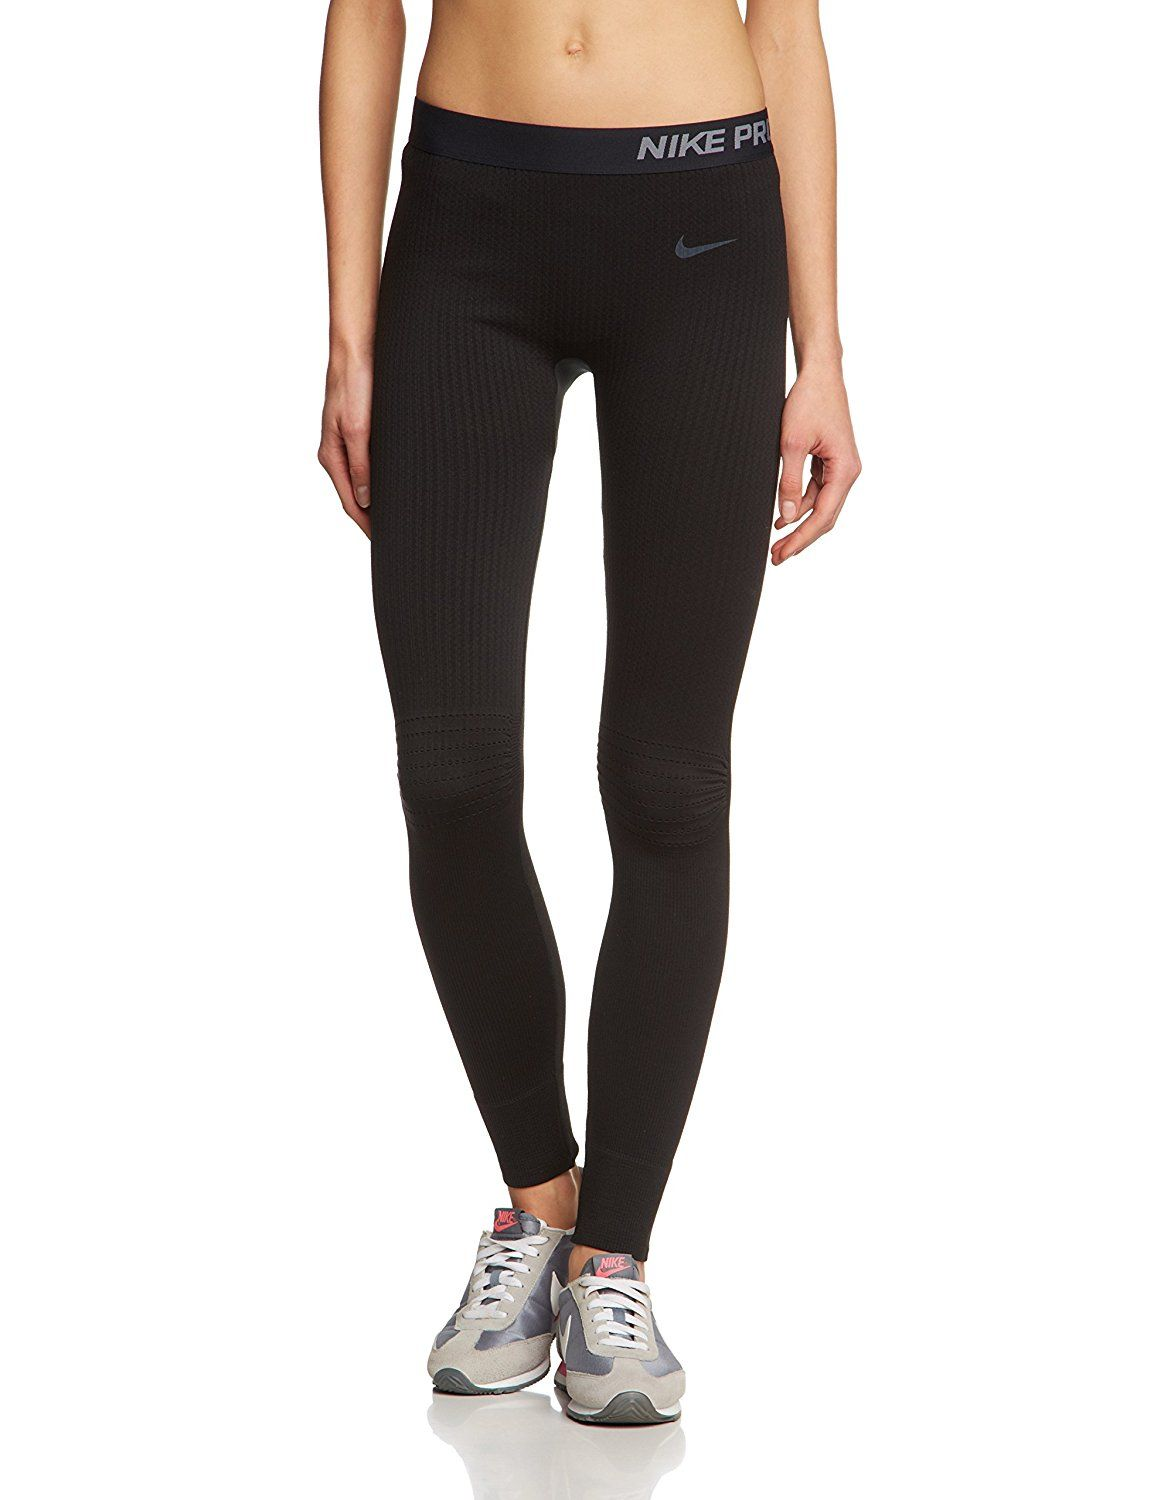 474a448df25fe Amazon.com : Nike Women's Pro Hyperwarm Limitless Tight Black Size X ...